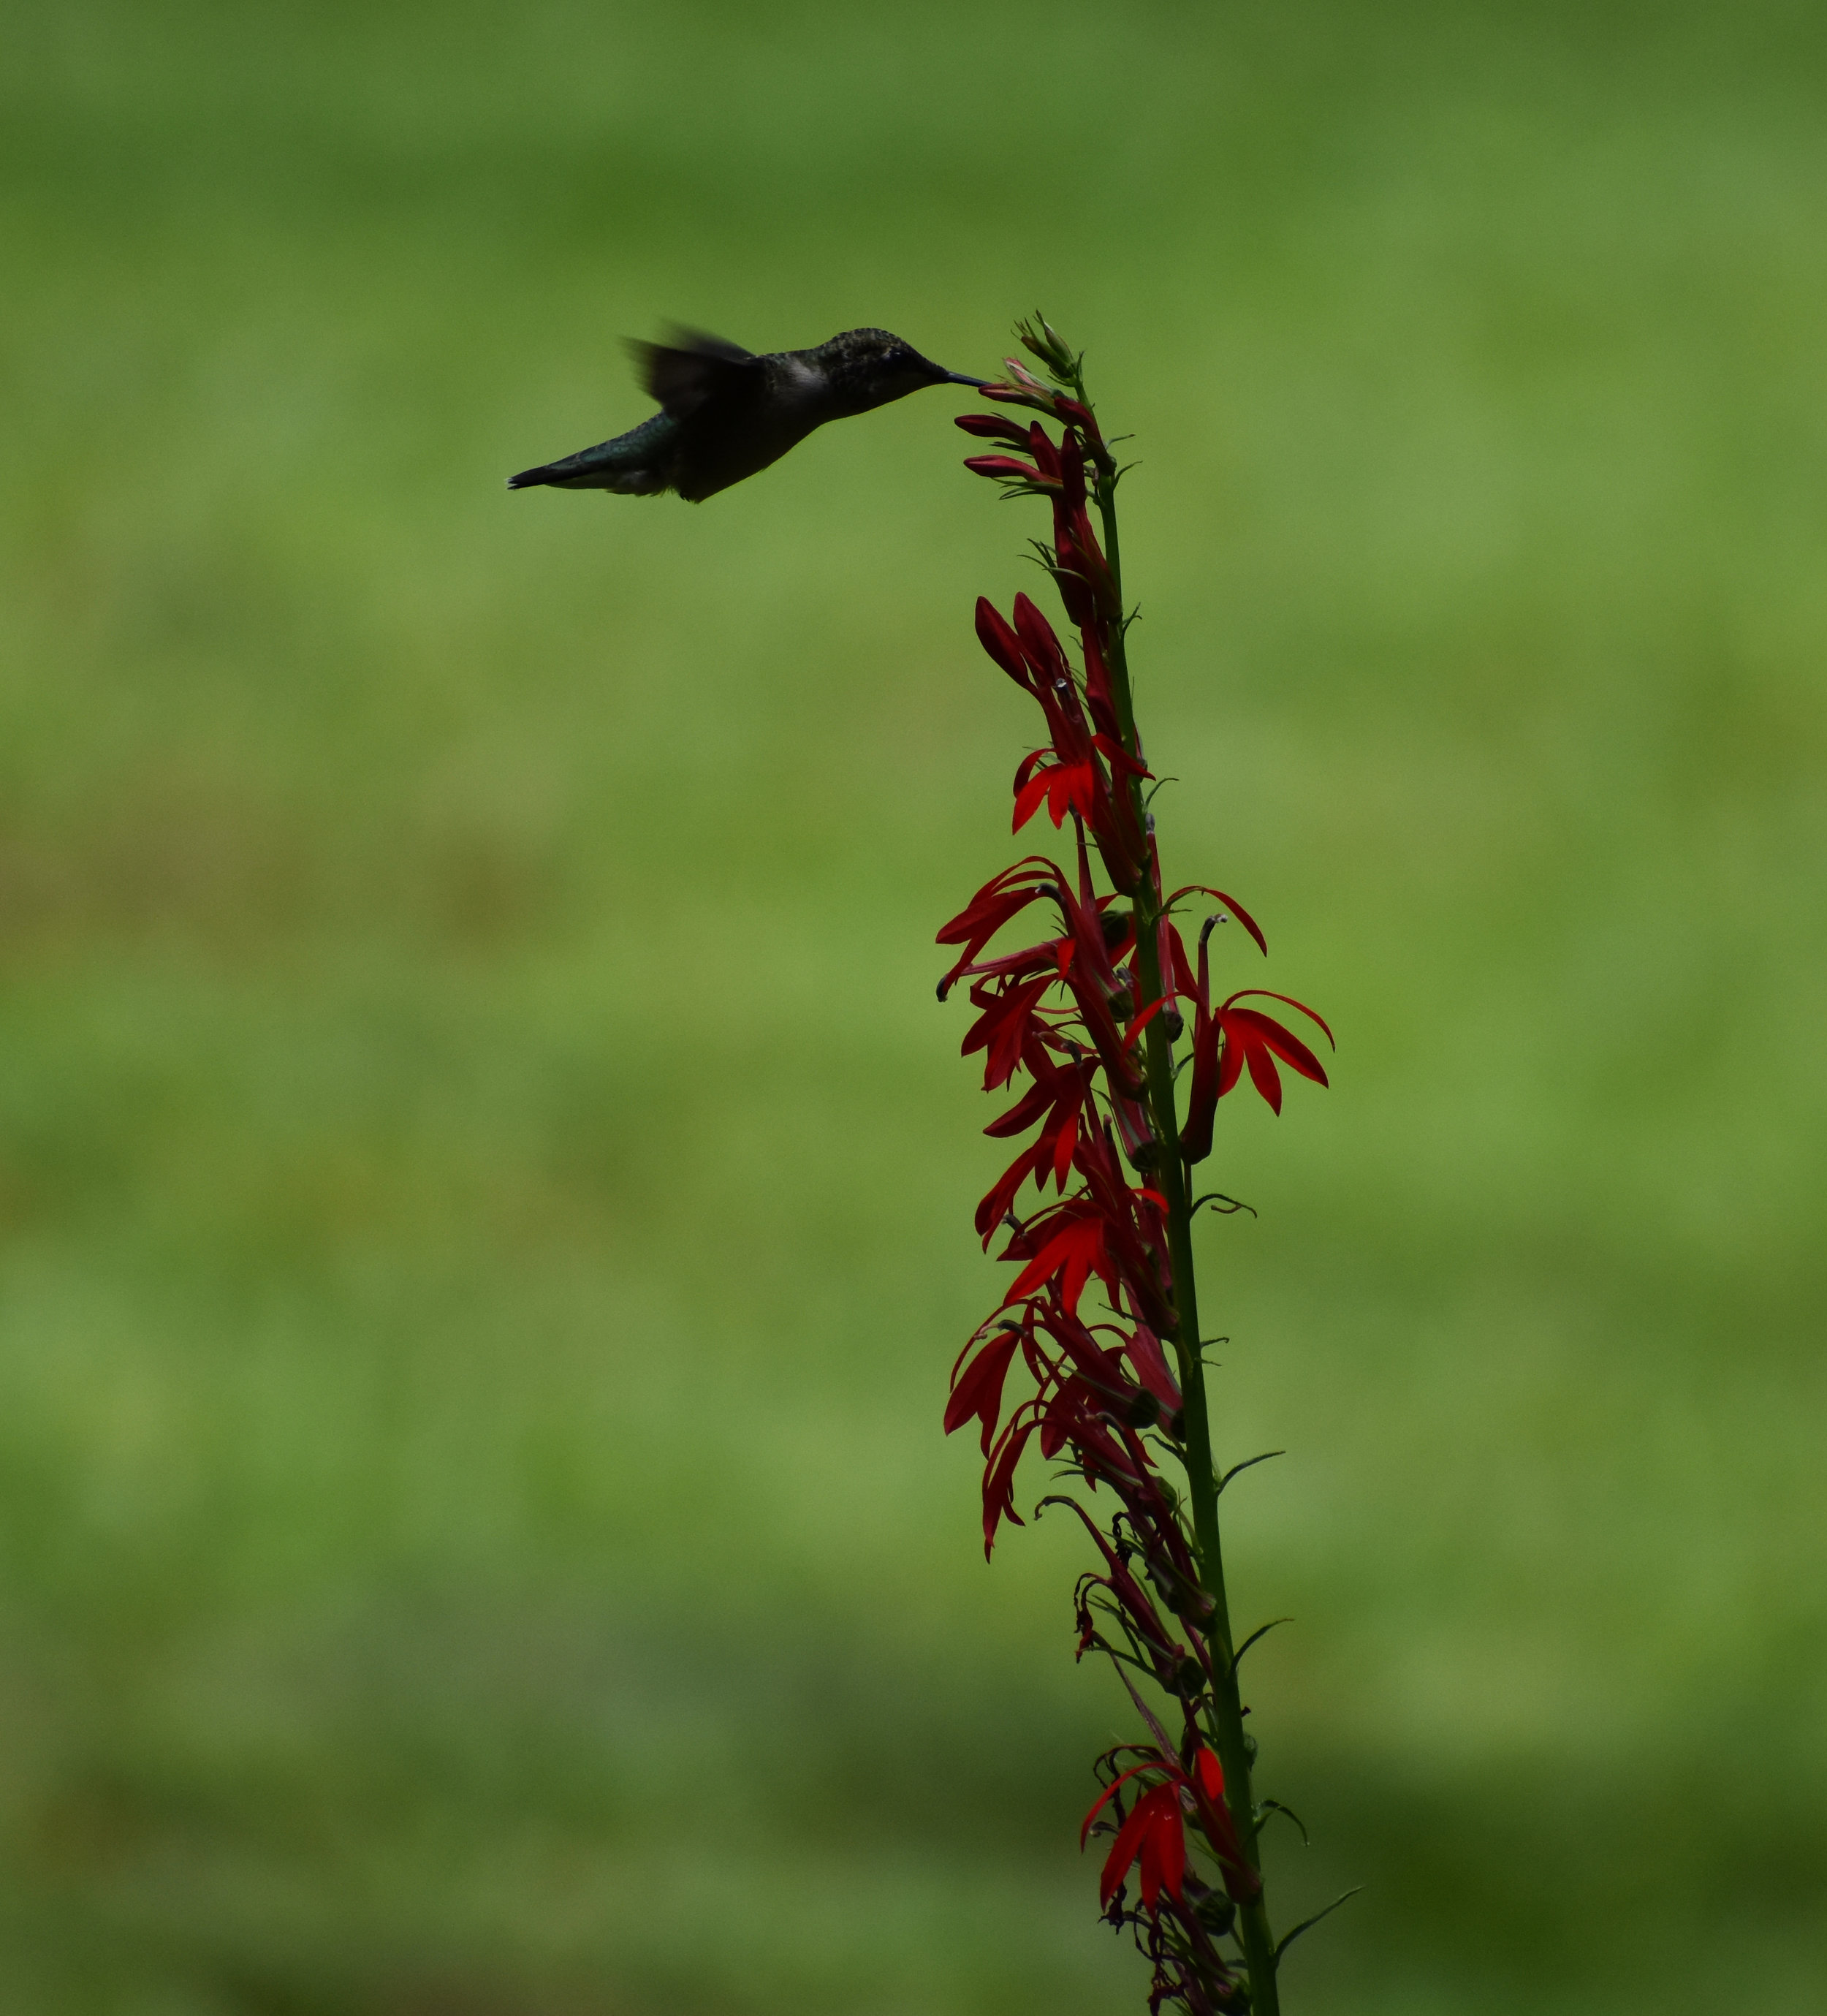 Ruby-Throated Hummingbird extracting nectar from Cardinal Flower